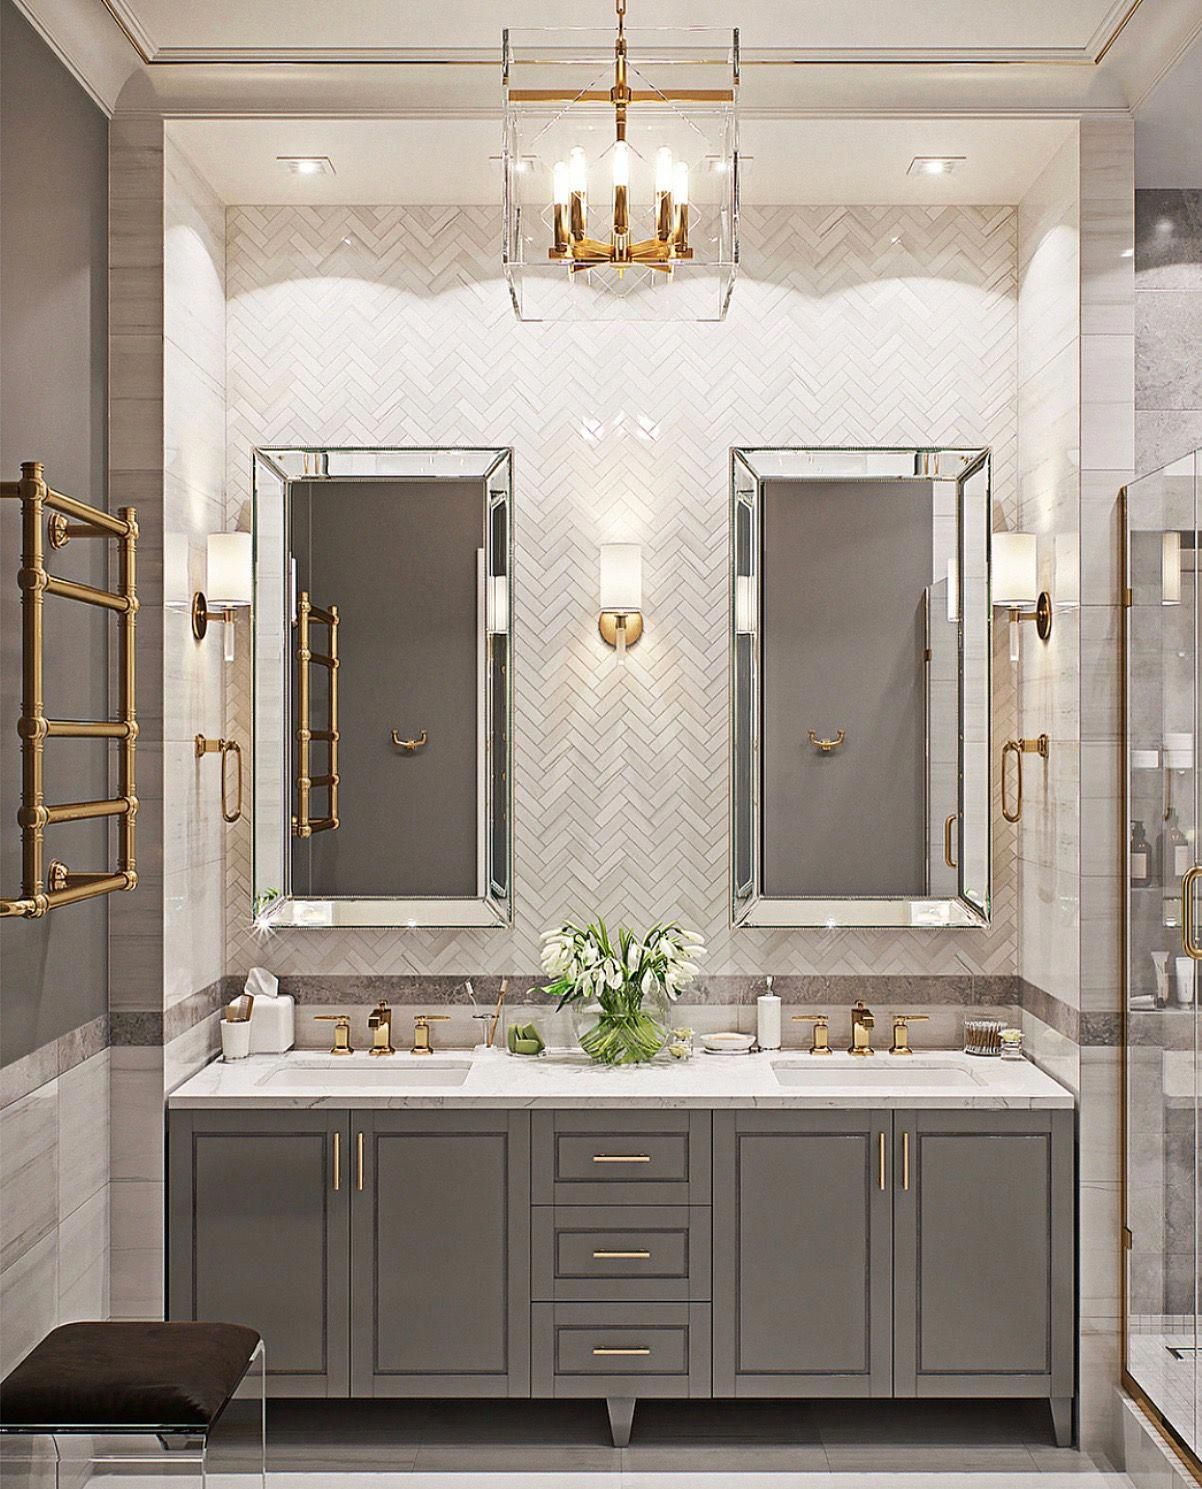 I Love All The Lighting, The Tall Mirrors, The Vanity In